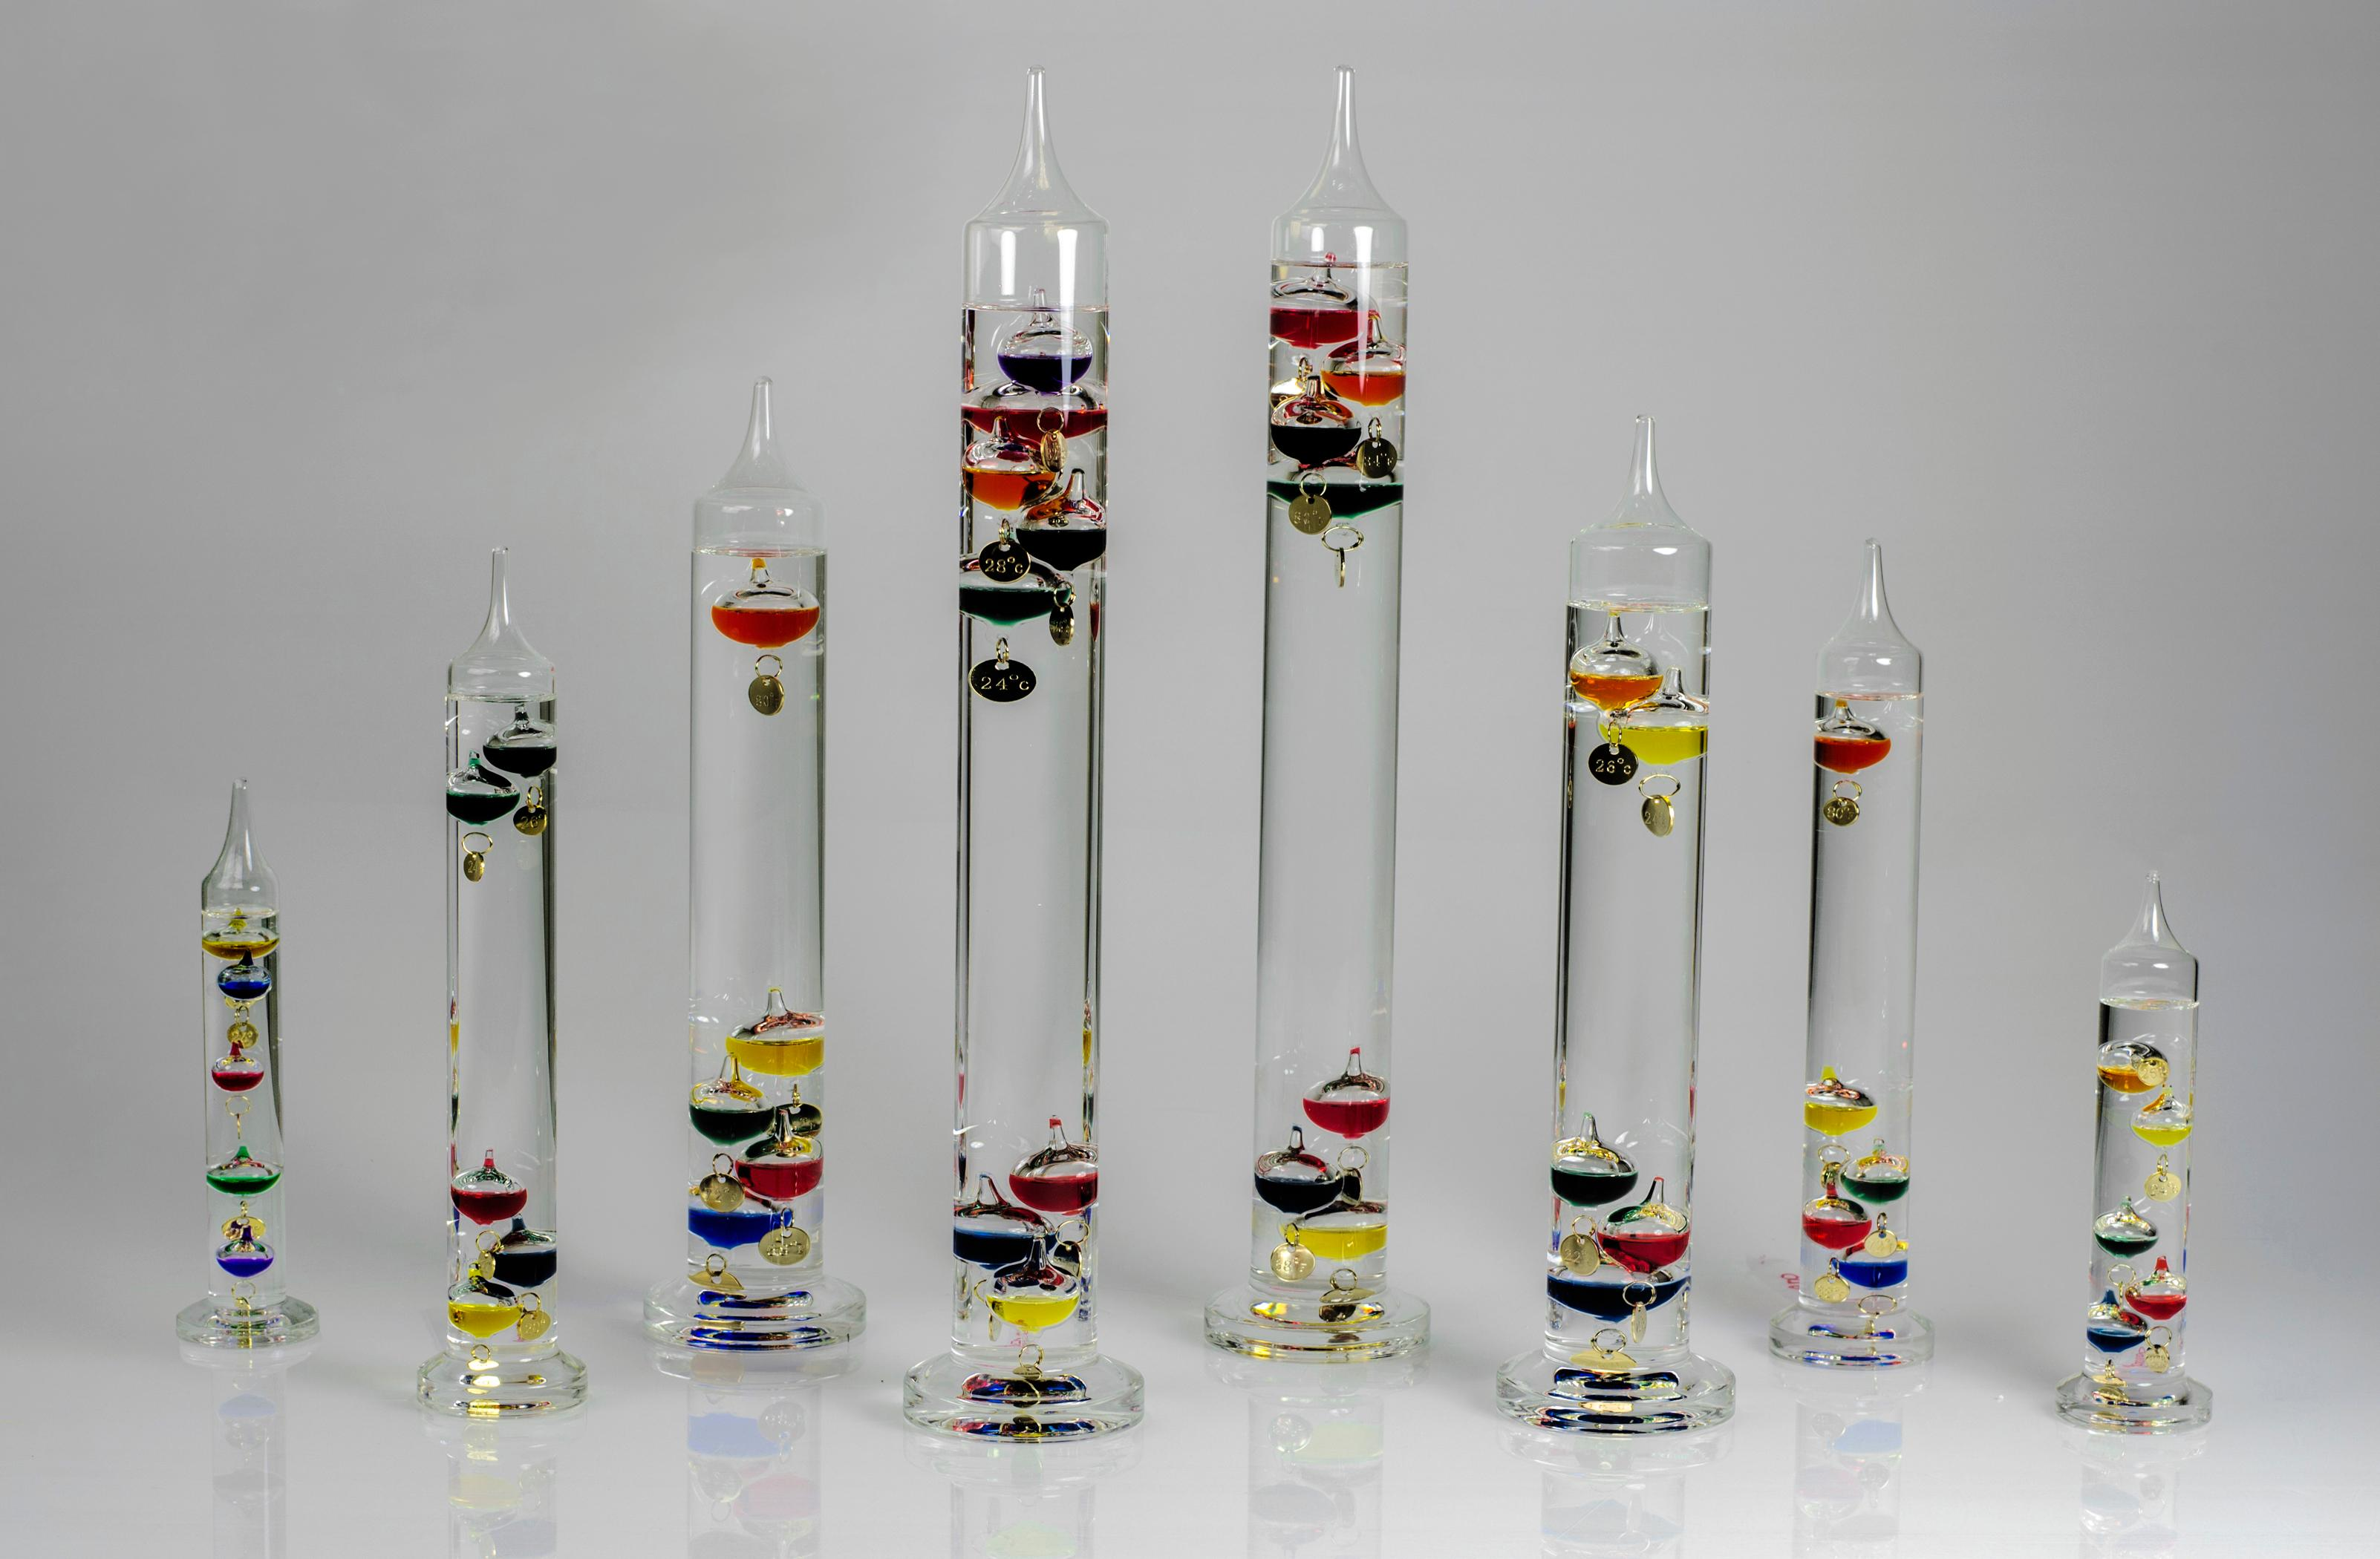 galileo thermometer Sale galileo thermometer great gifts for men natural wood the galileo shop $ 5999 $ 3999.